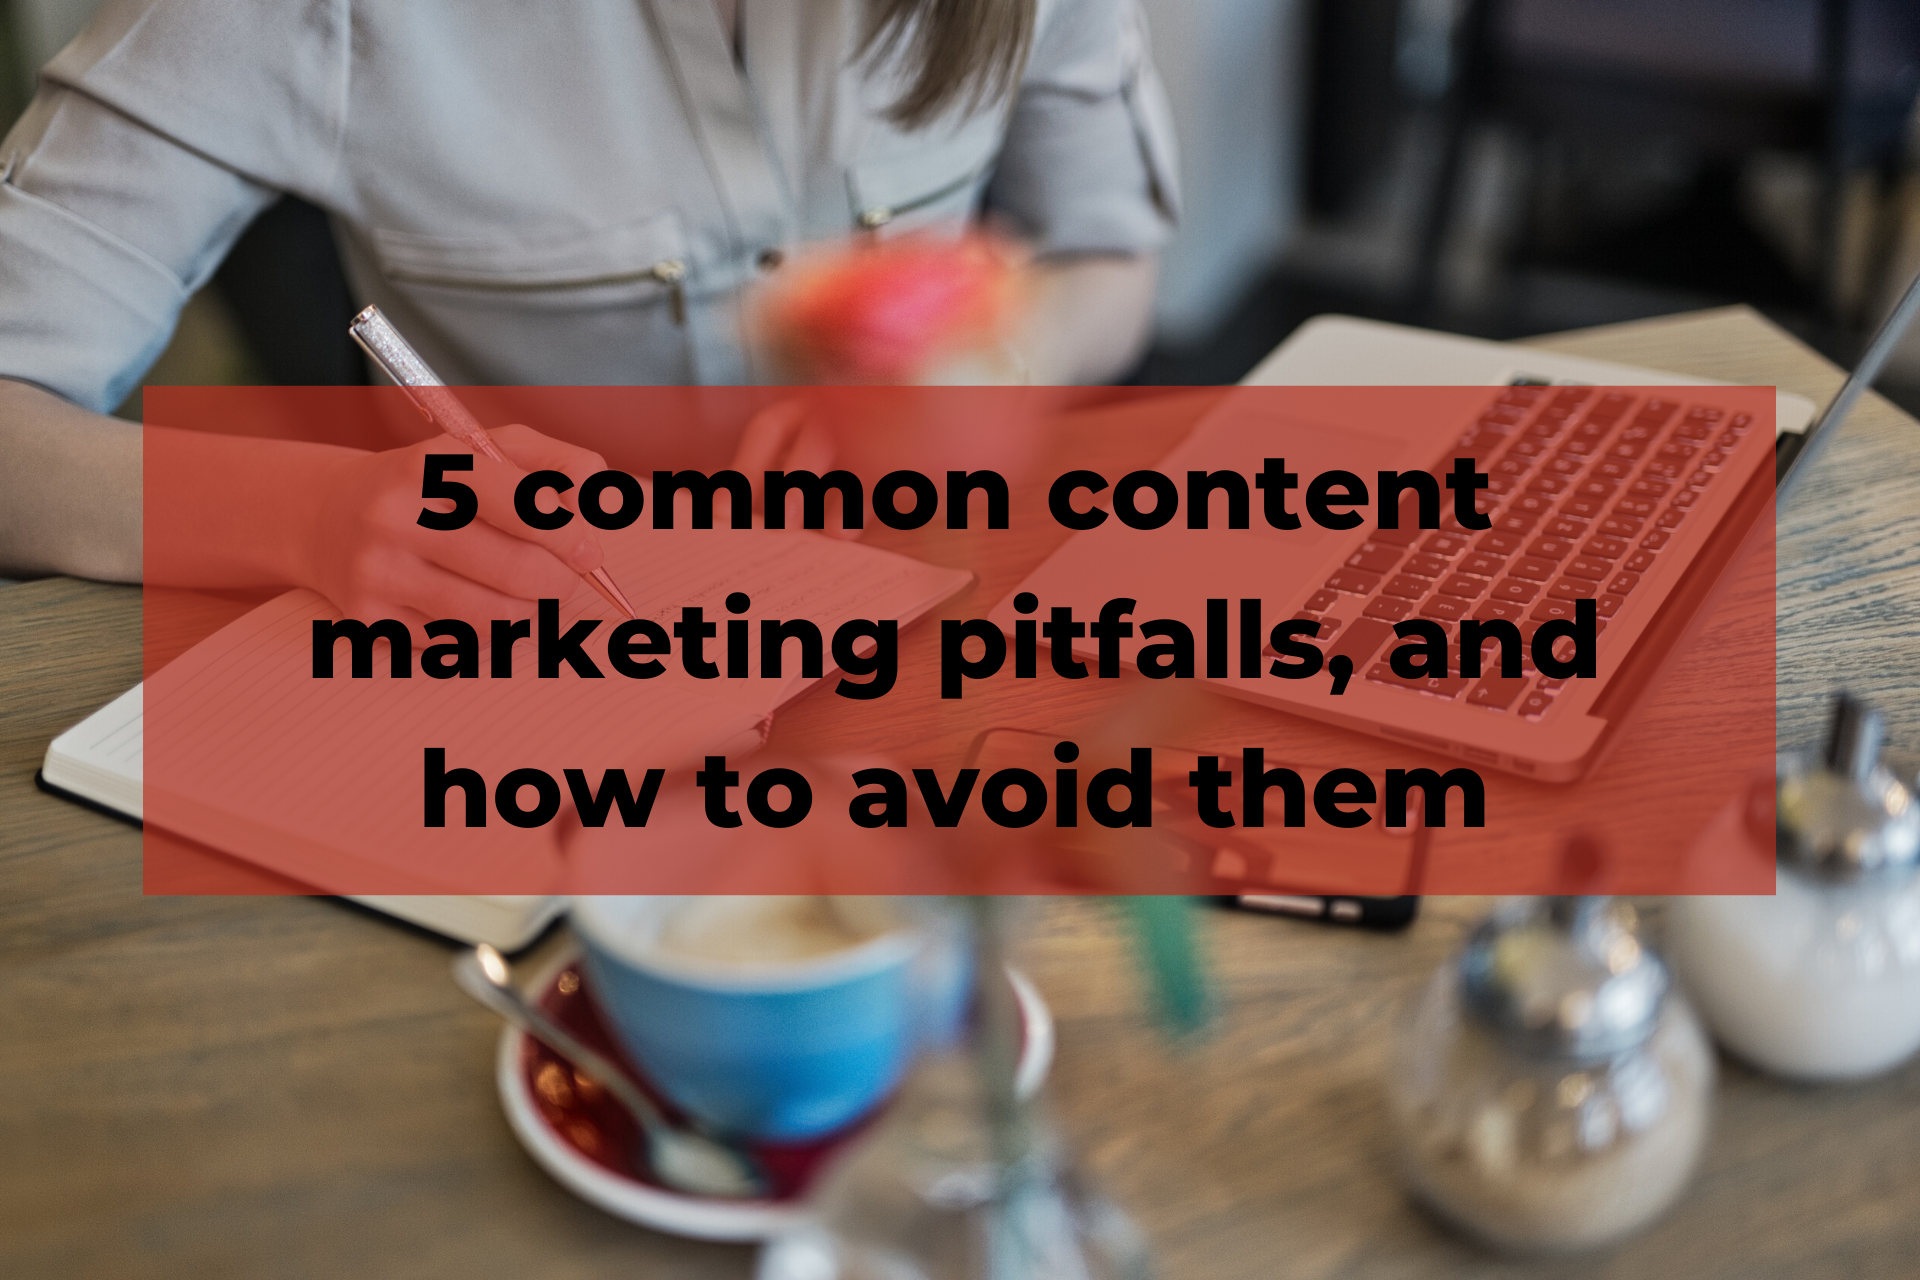 5 common content marketing pitfalls, and how to avoid them